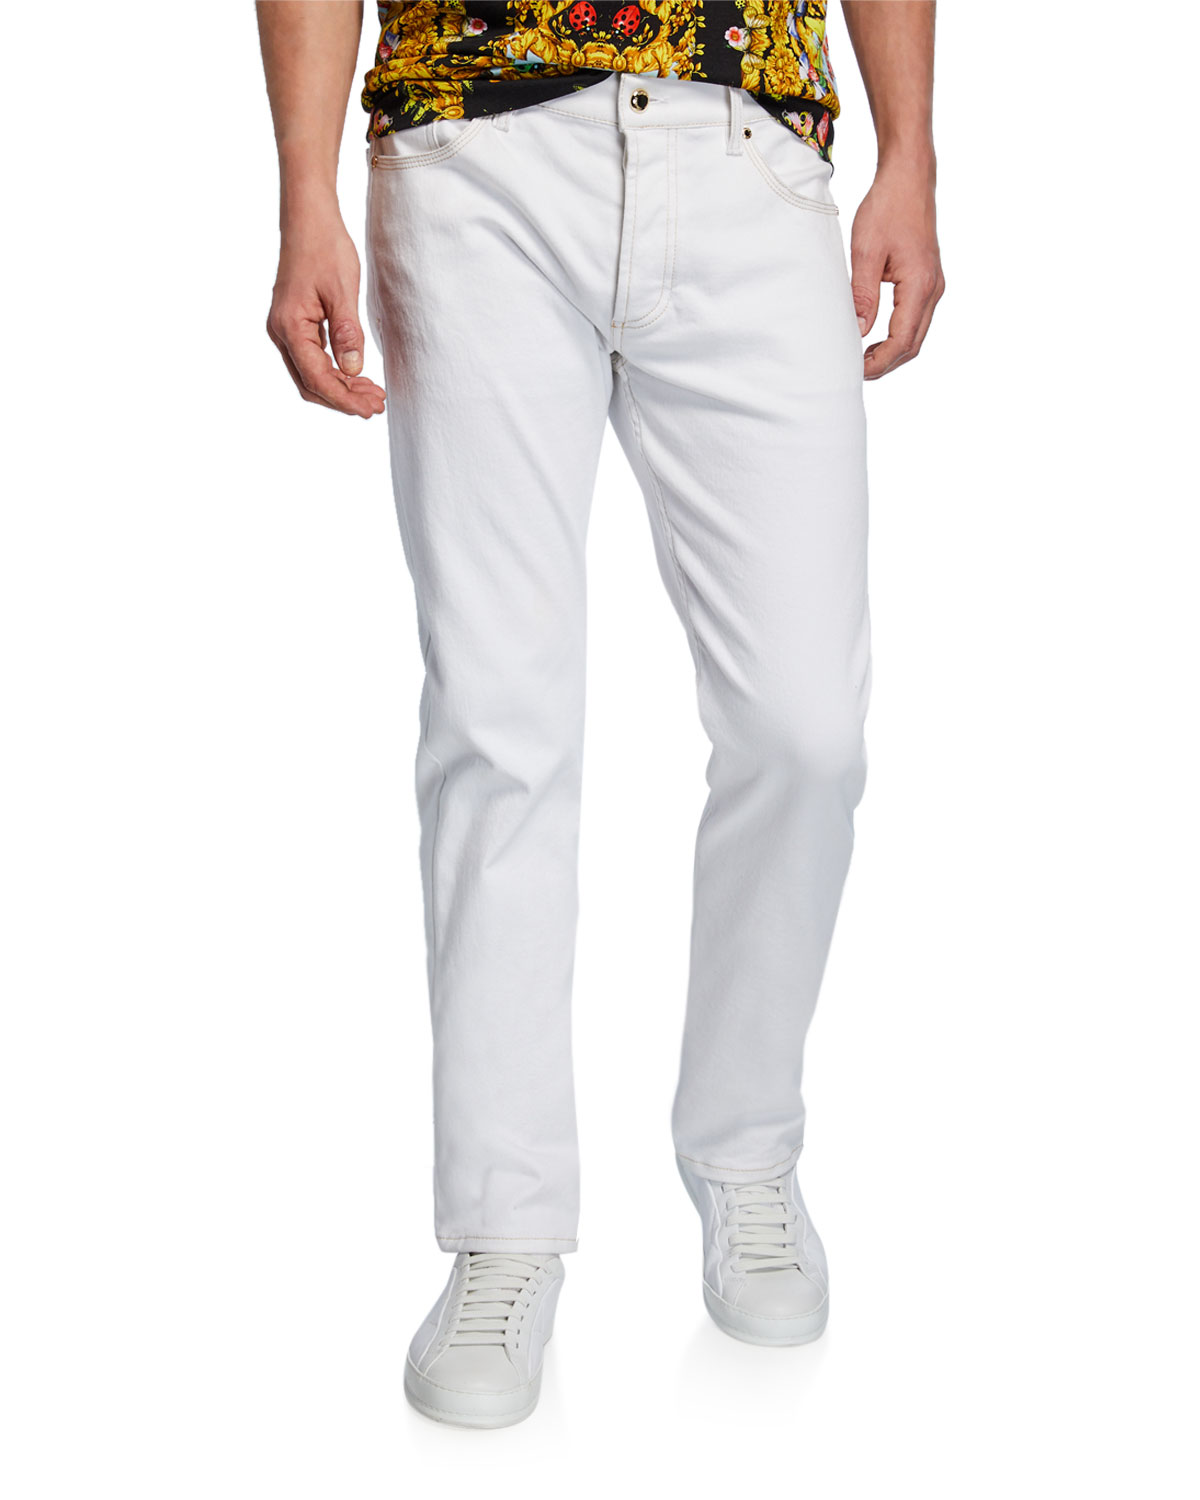 19e4e832 Buy versace jeans couture pants for men - Best men's versace jeans ...